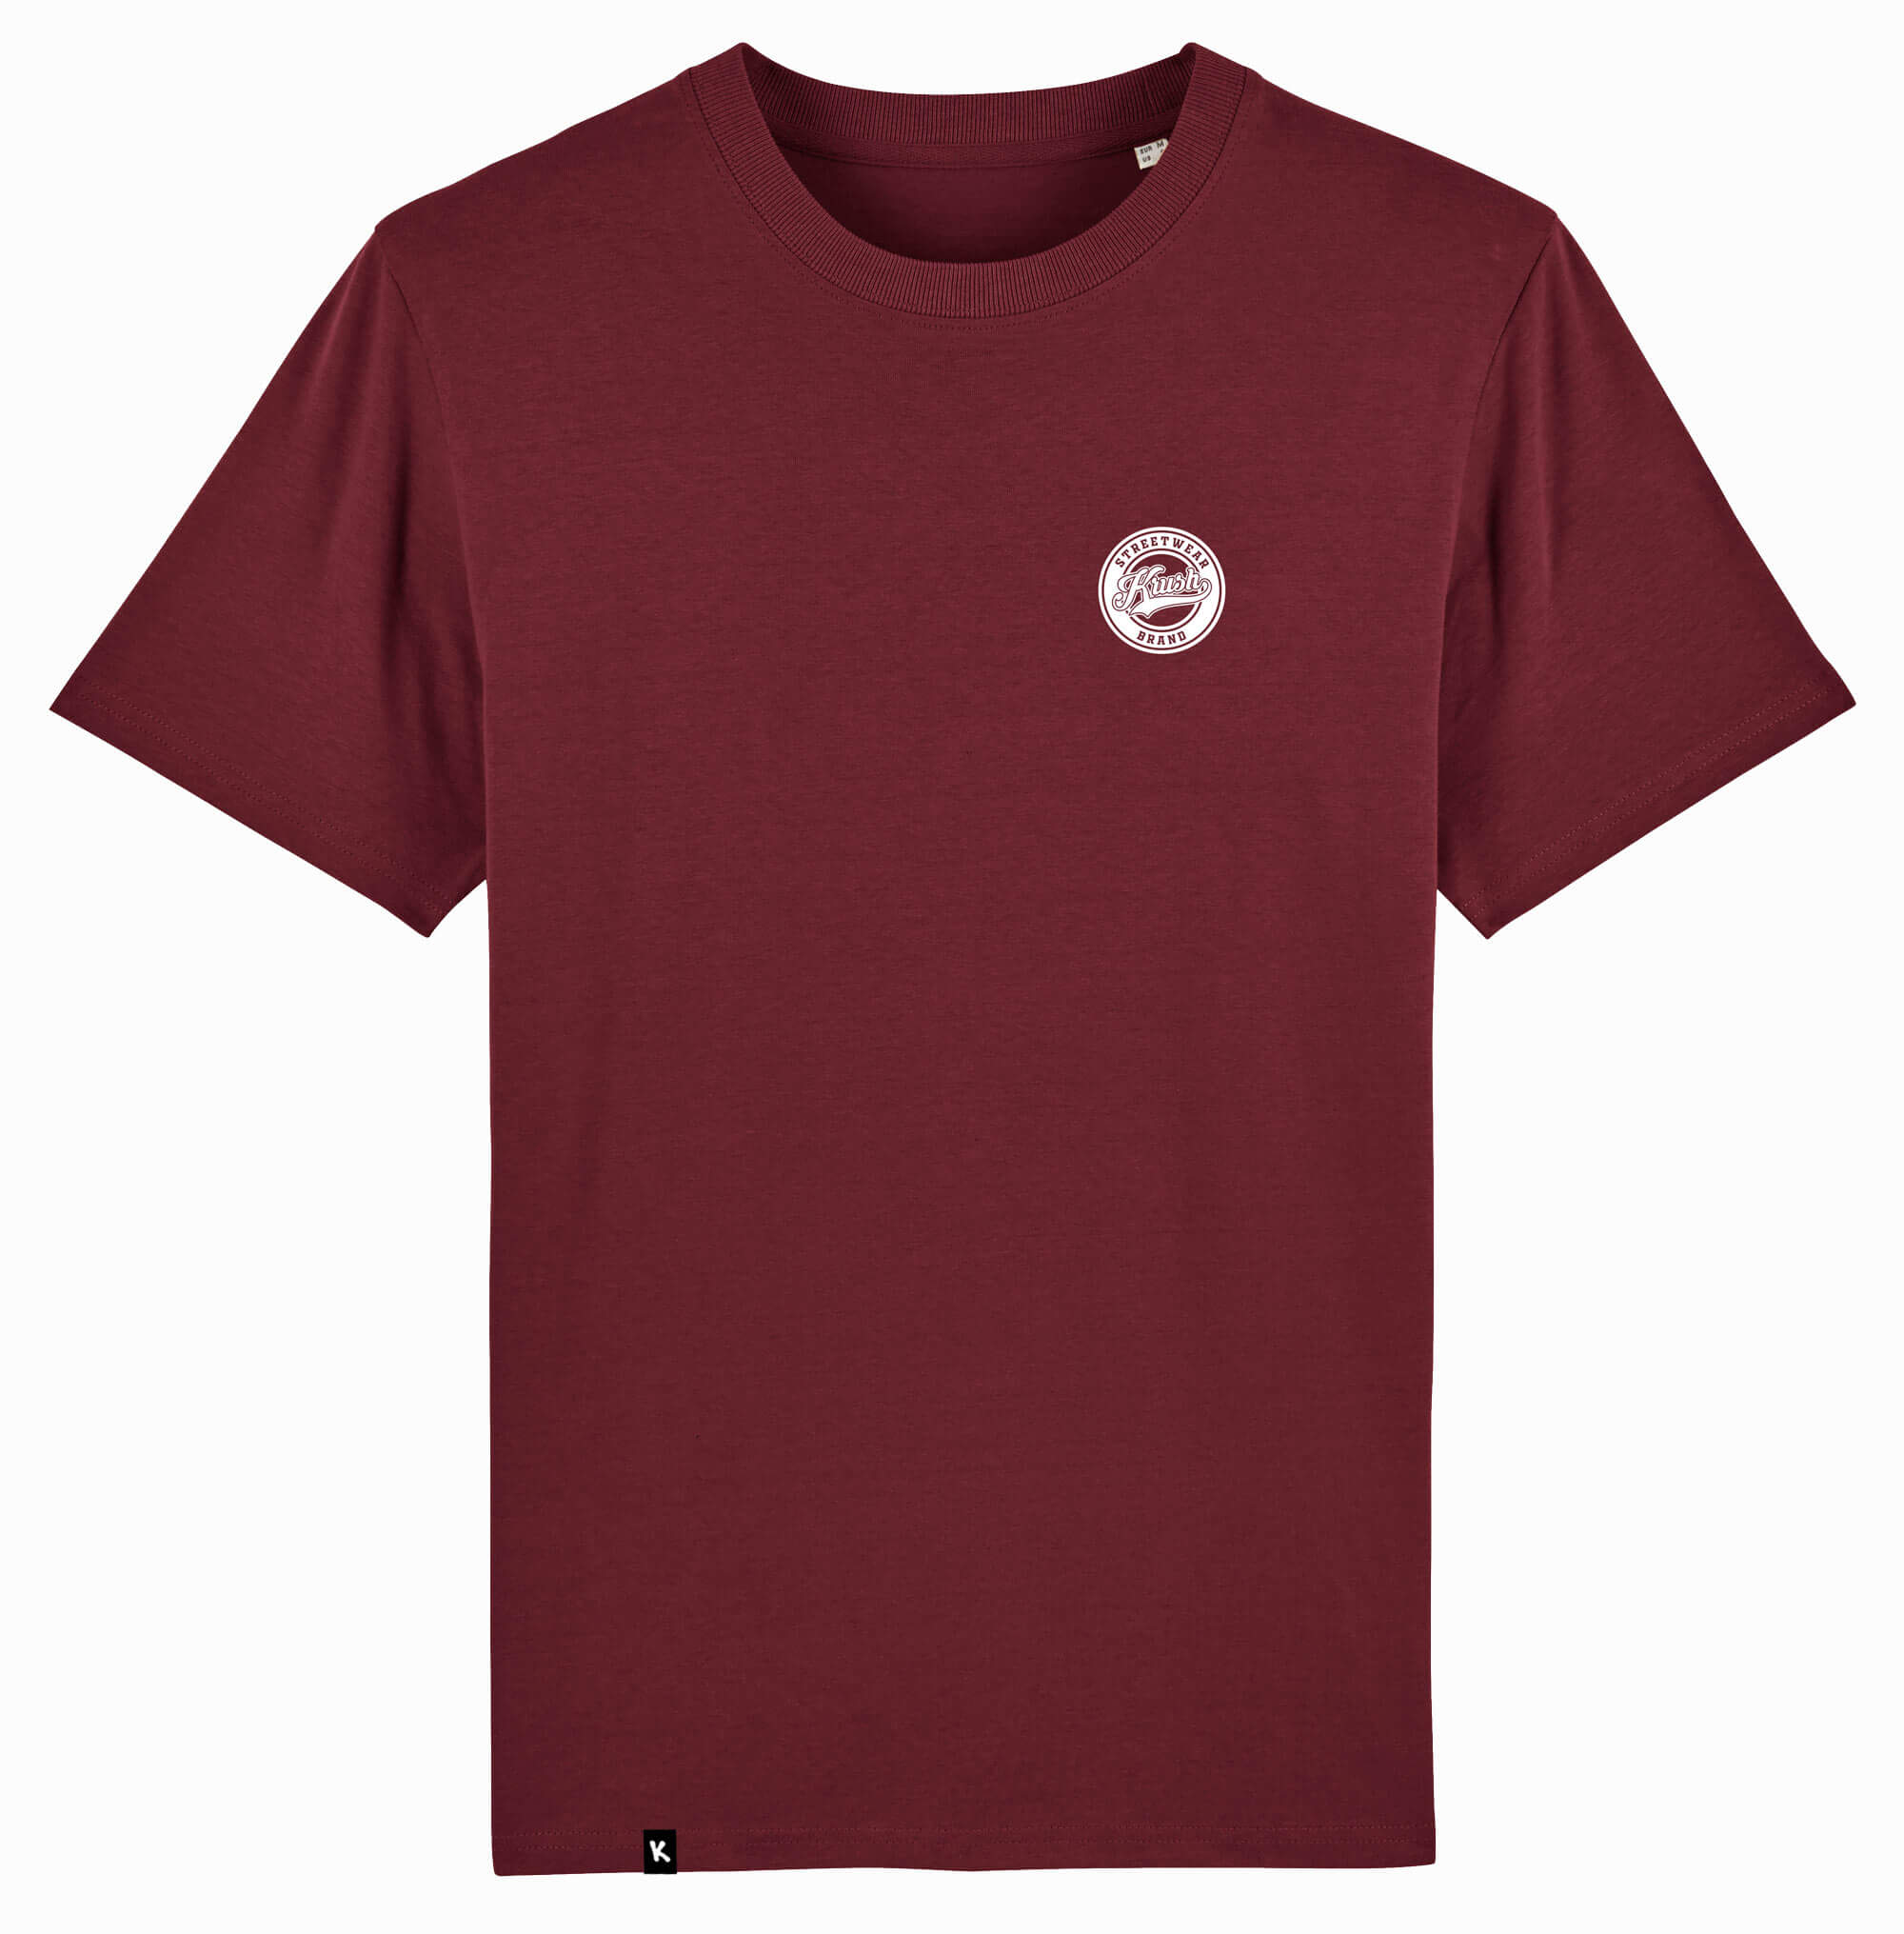 Krush Tee burgundy